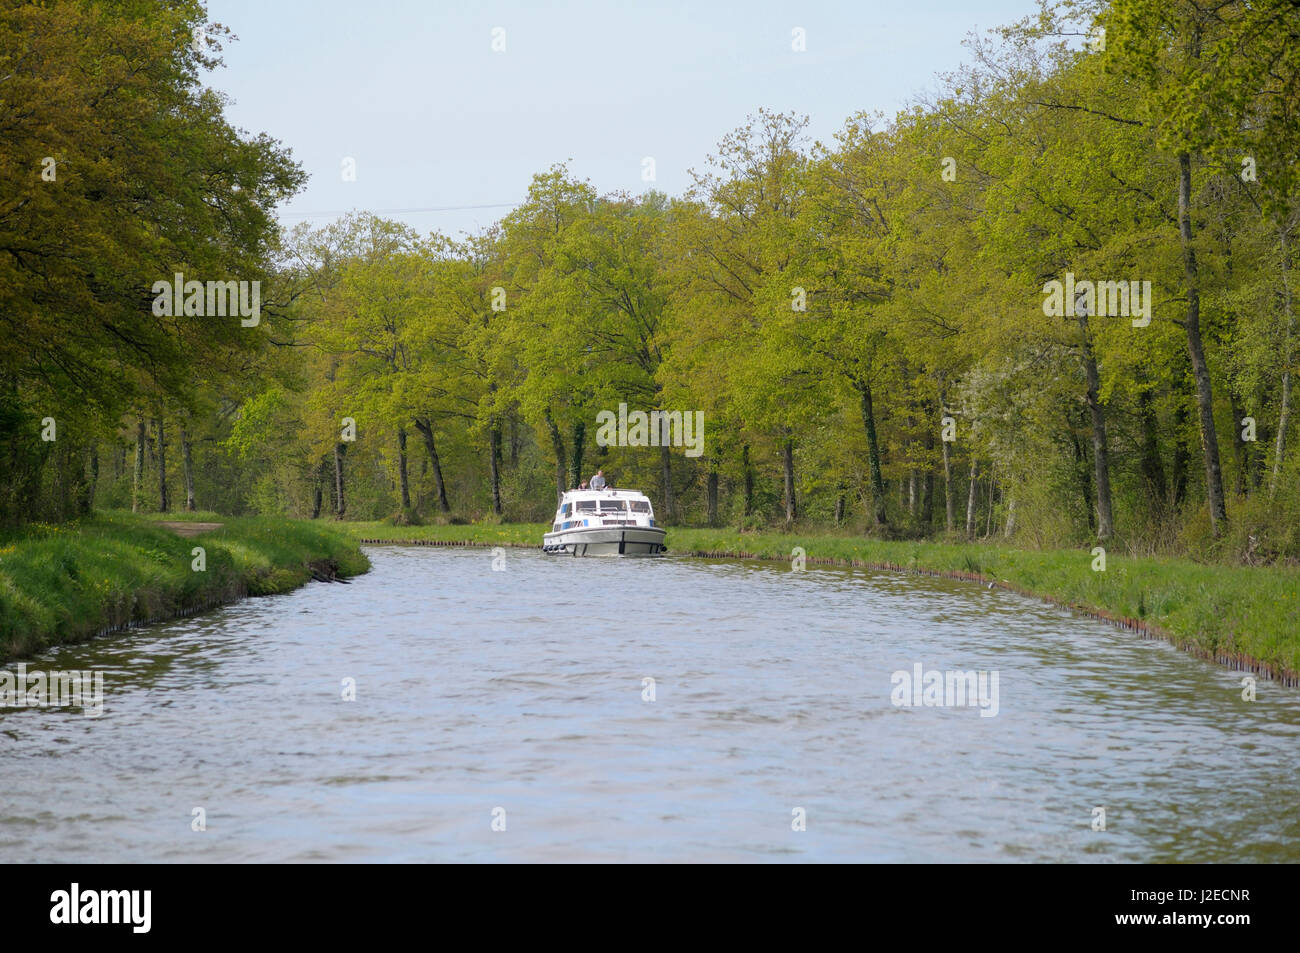 France, Loire. Canal boat, Canal lateral a la Loire - Stock Image